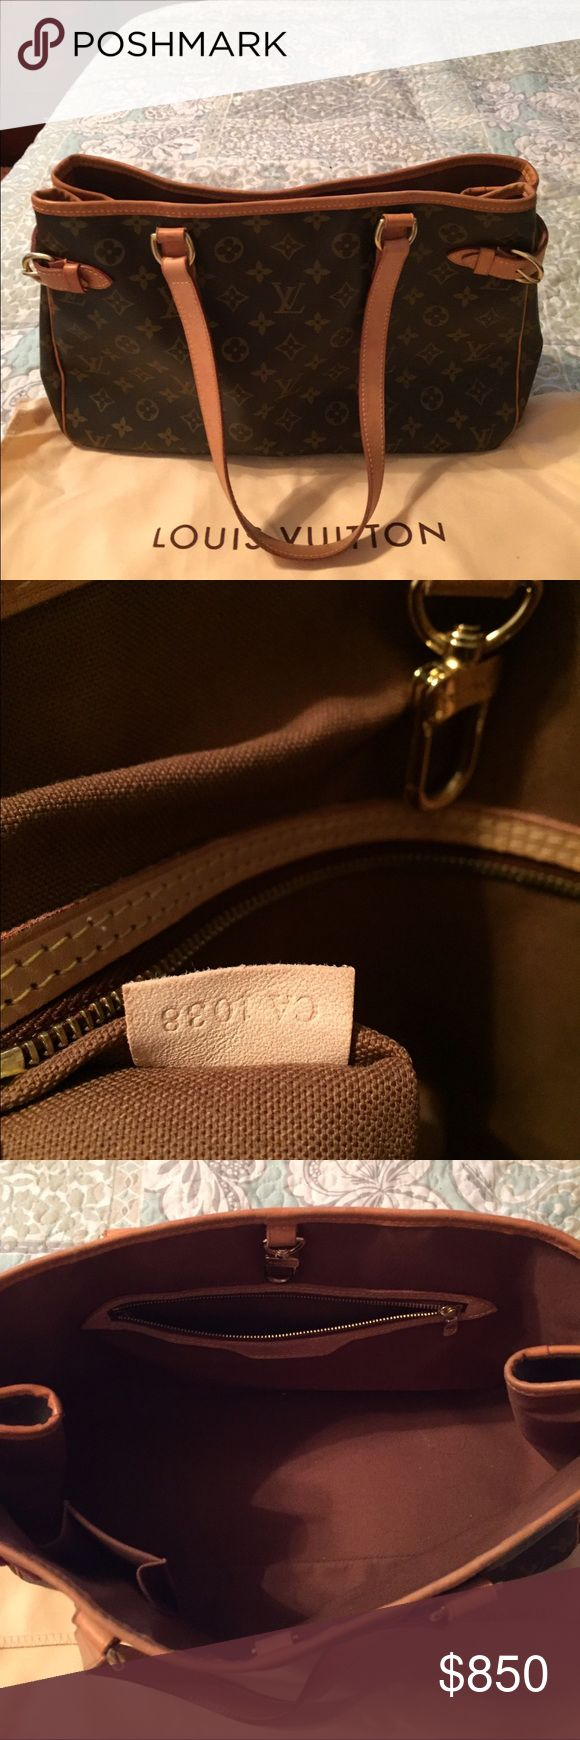 💯Authentic Louis Vuitton Battignolles This gorgeous gem is now retired from LV. Great everyday shoulder bag. Inside canvas has no stains or tears, has one zip packet and small cell phone holder. Outside  has no tears, holes, and the leather trim is now a beautiful Carmel patina with only slight surface dirt and aging. Very pretty bag. Date code-CA 1038 country of origin is Spain Louis Vuitton Bags